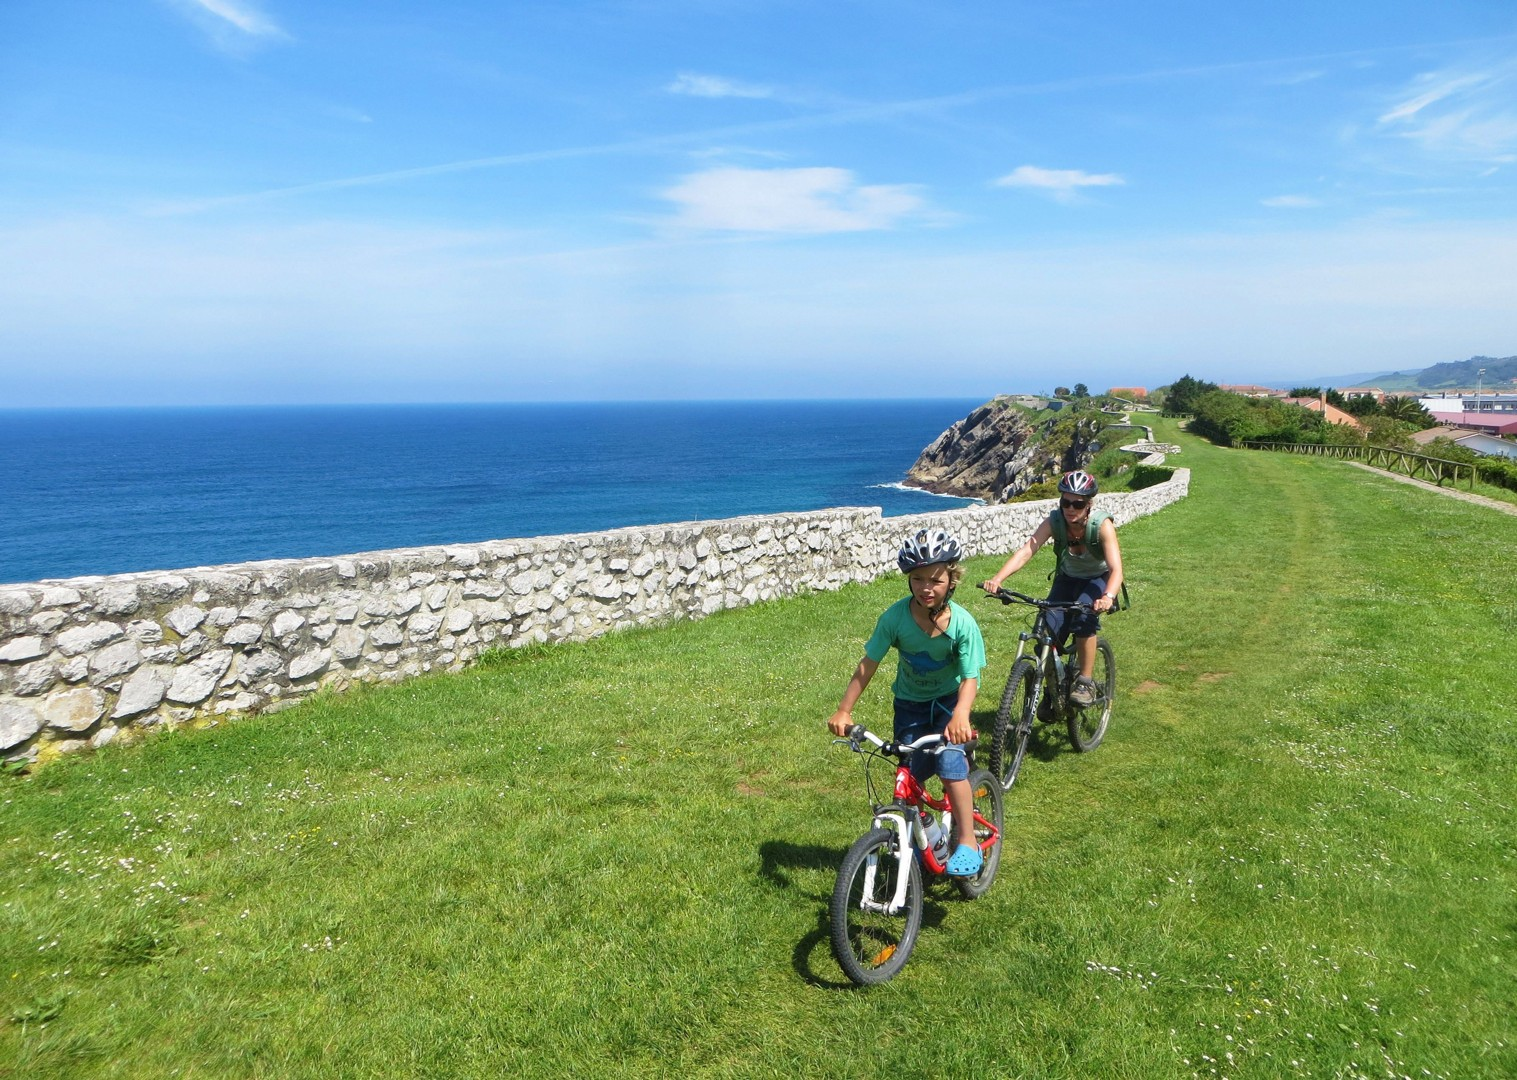 _Holiday.617.17574.jpg - Northern Spain - Asturian Coastal Ride - Self-Guided Family Cycling Holiday - Family Cycling